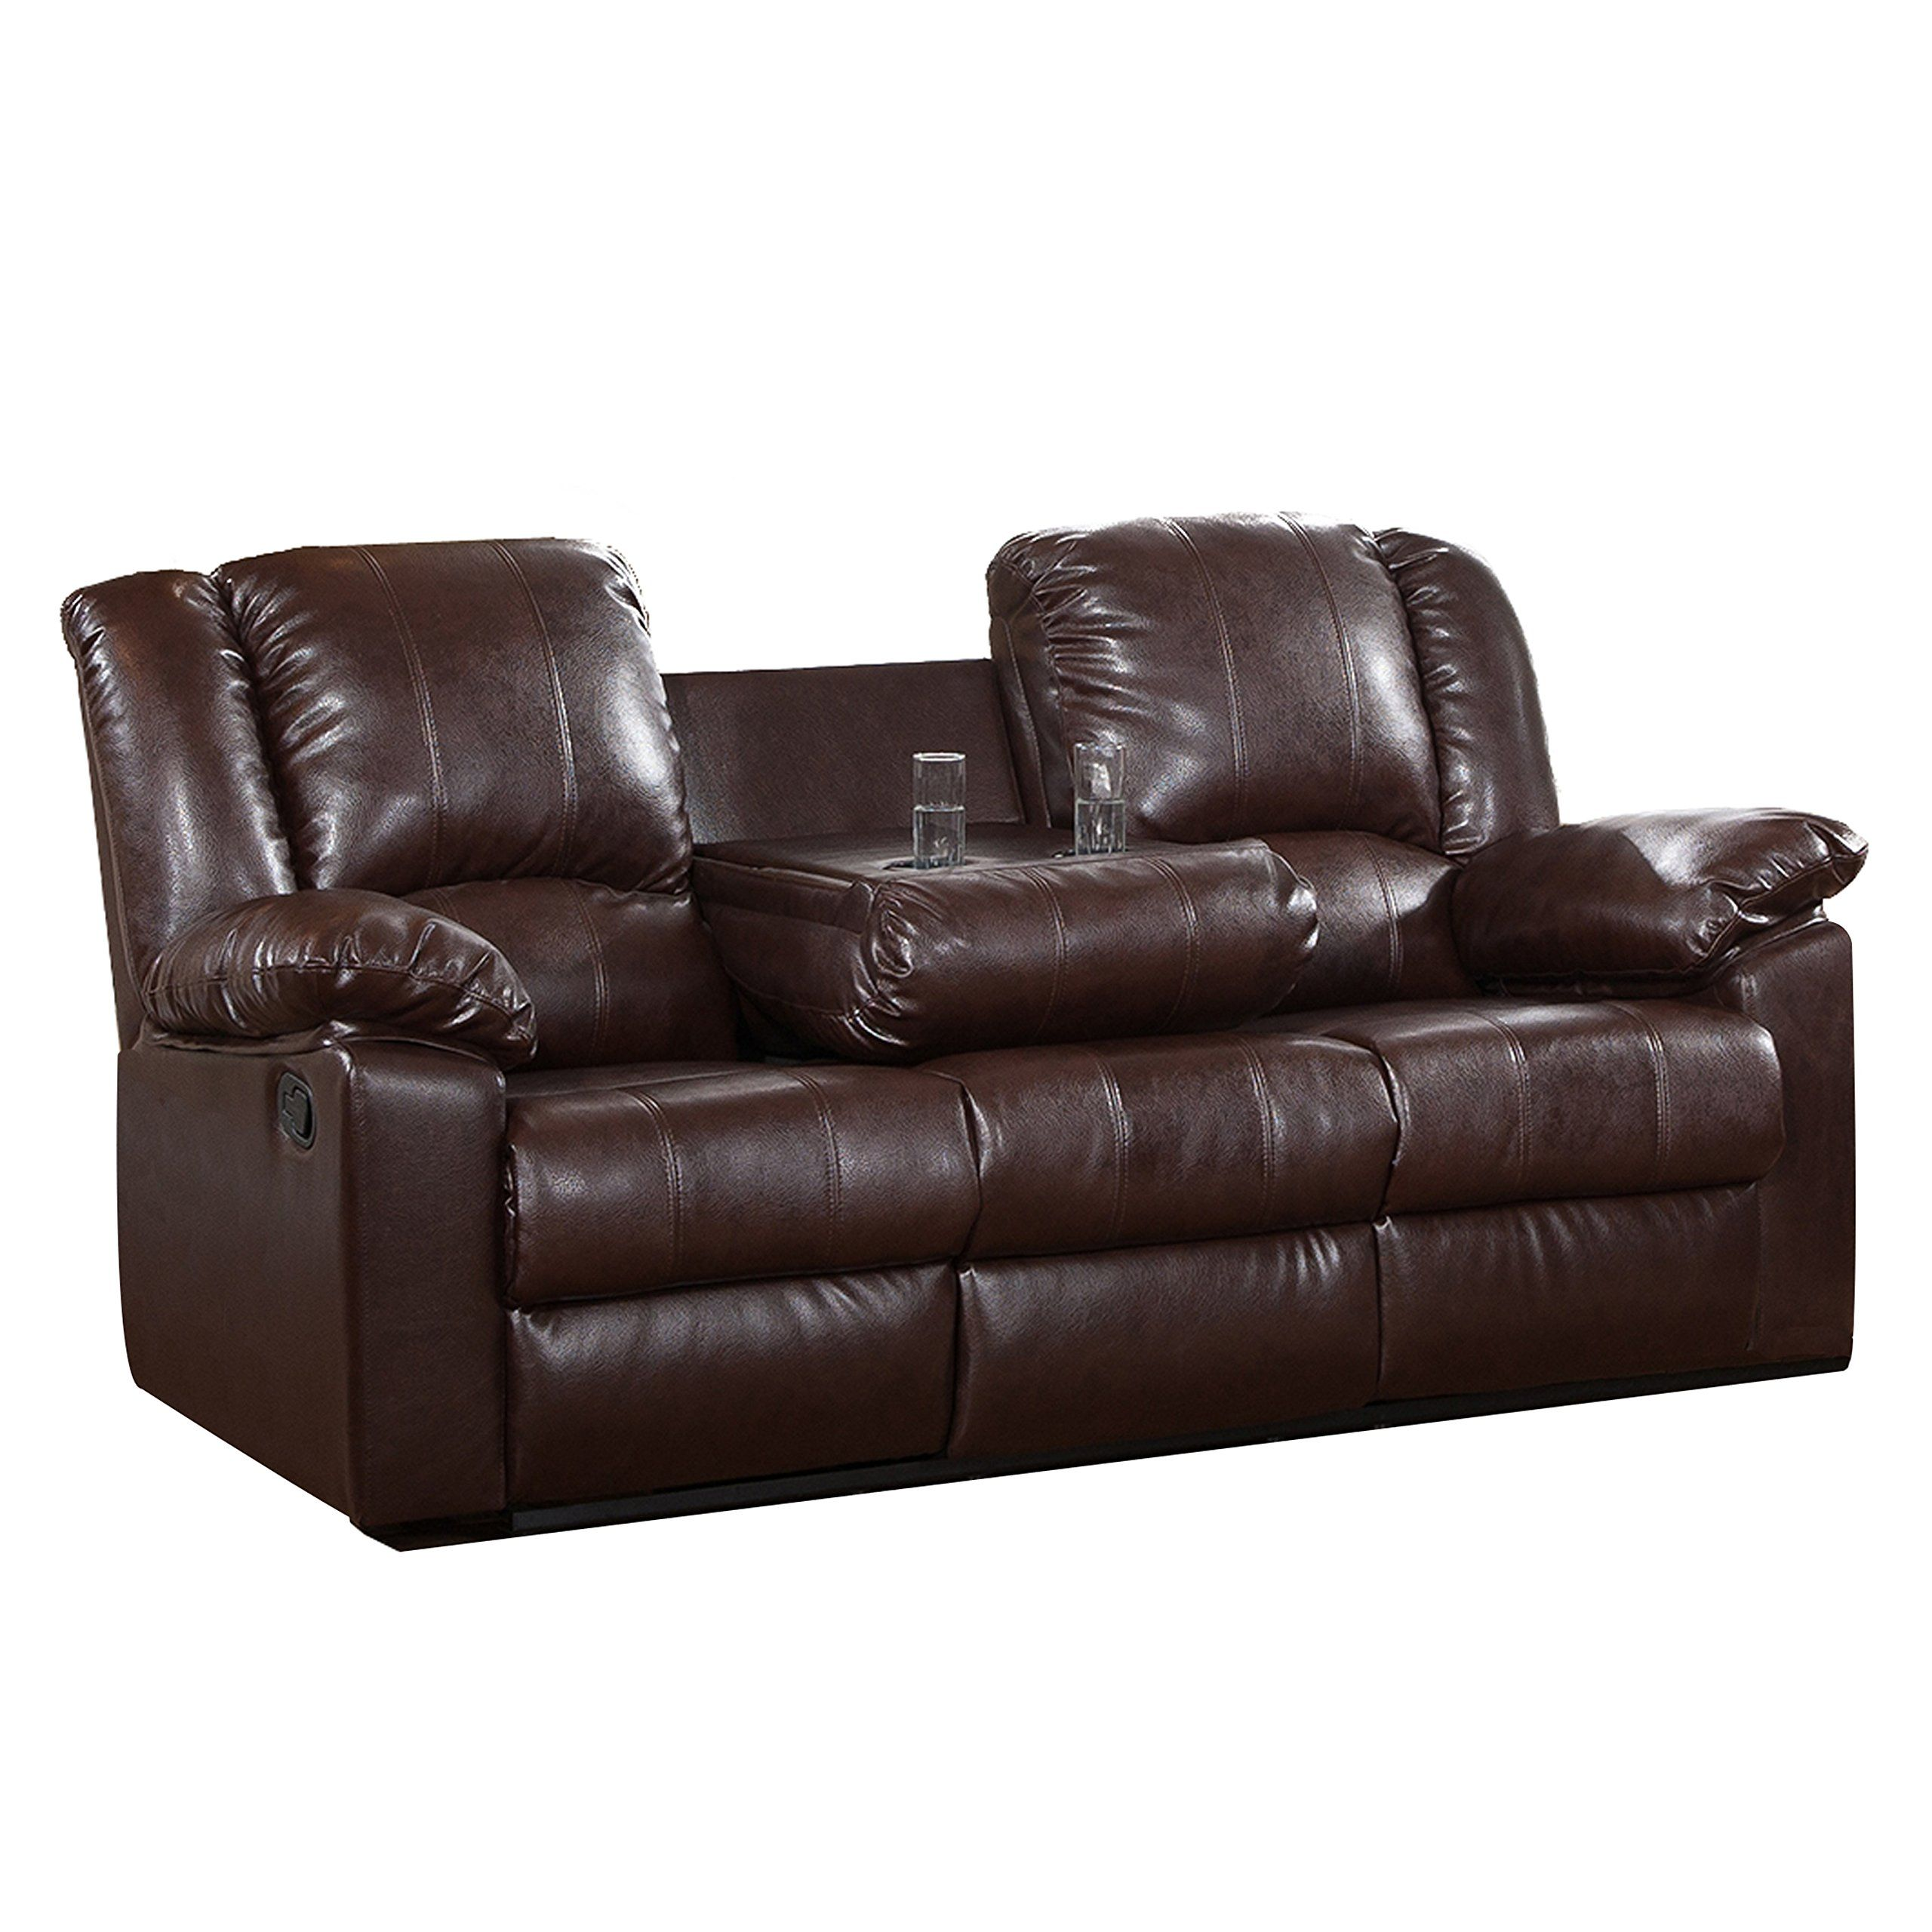 Merveilleux Milton Greens Stars Burgas Reclining Sofa With Dropdown Cup Holder, 81 Inch  By 38 Inch By 40 Inch, Dark Brown. Luxurious, Plush Faux Leatherette  Upholstery.